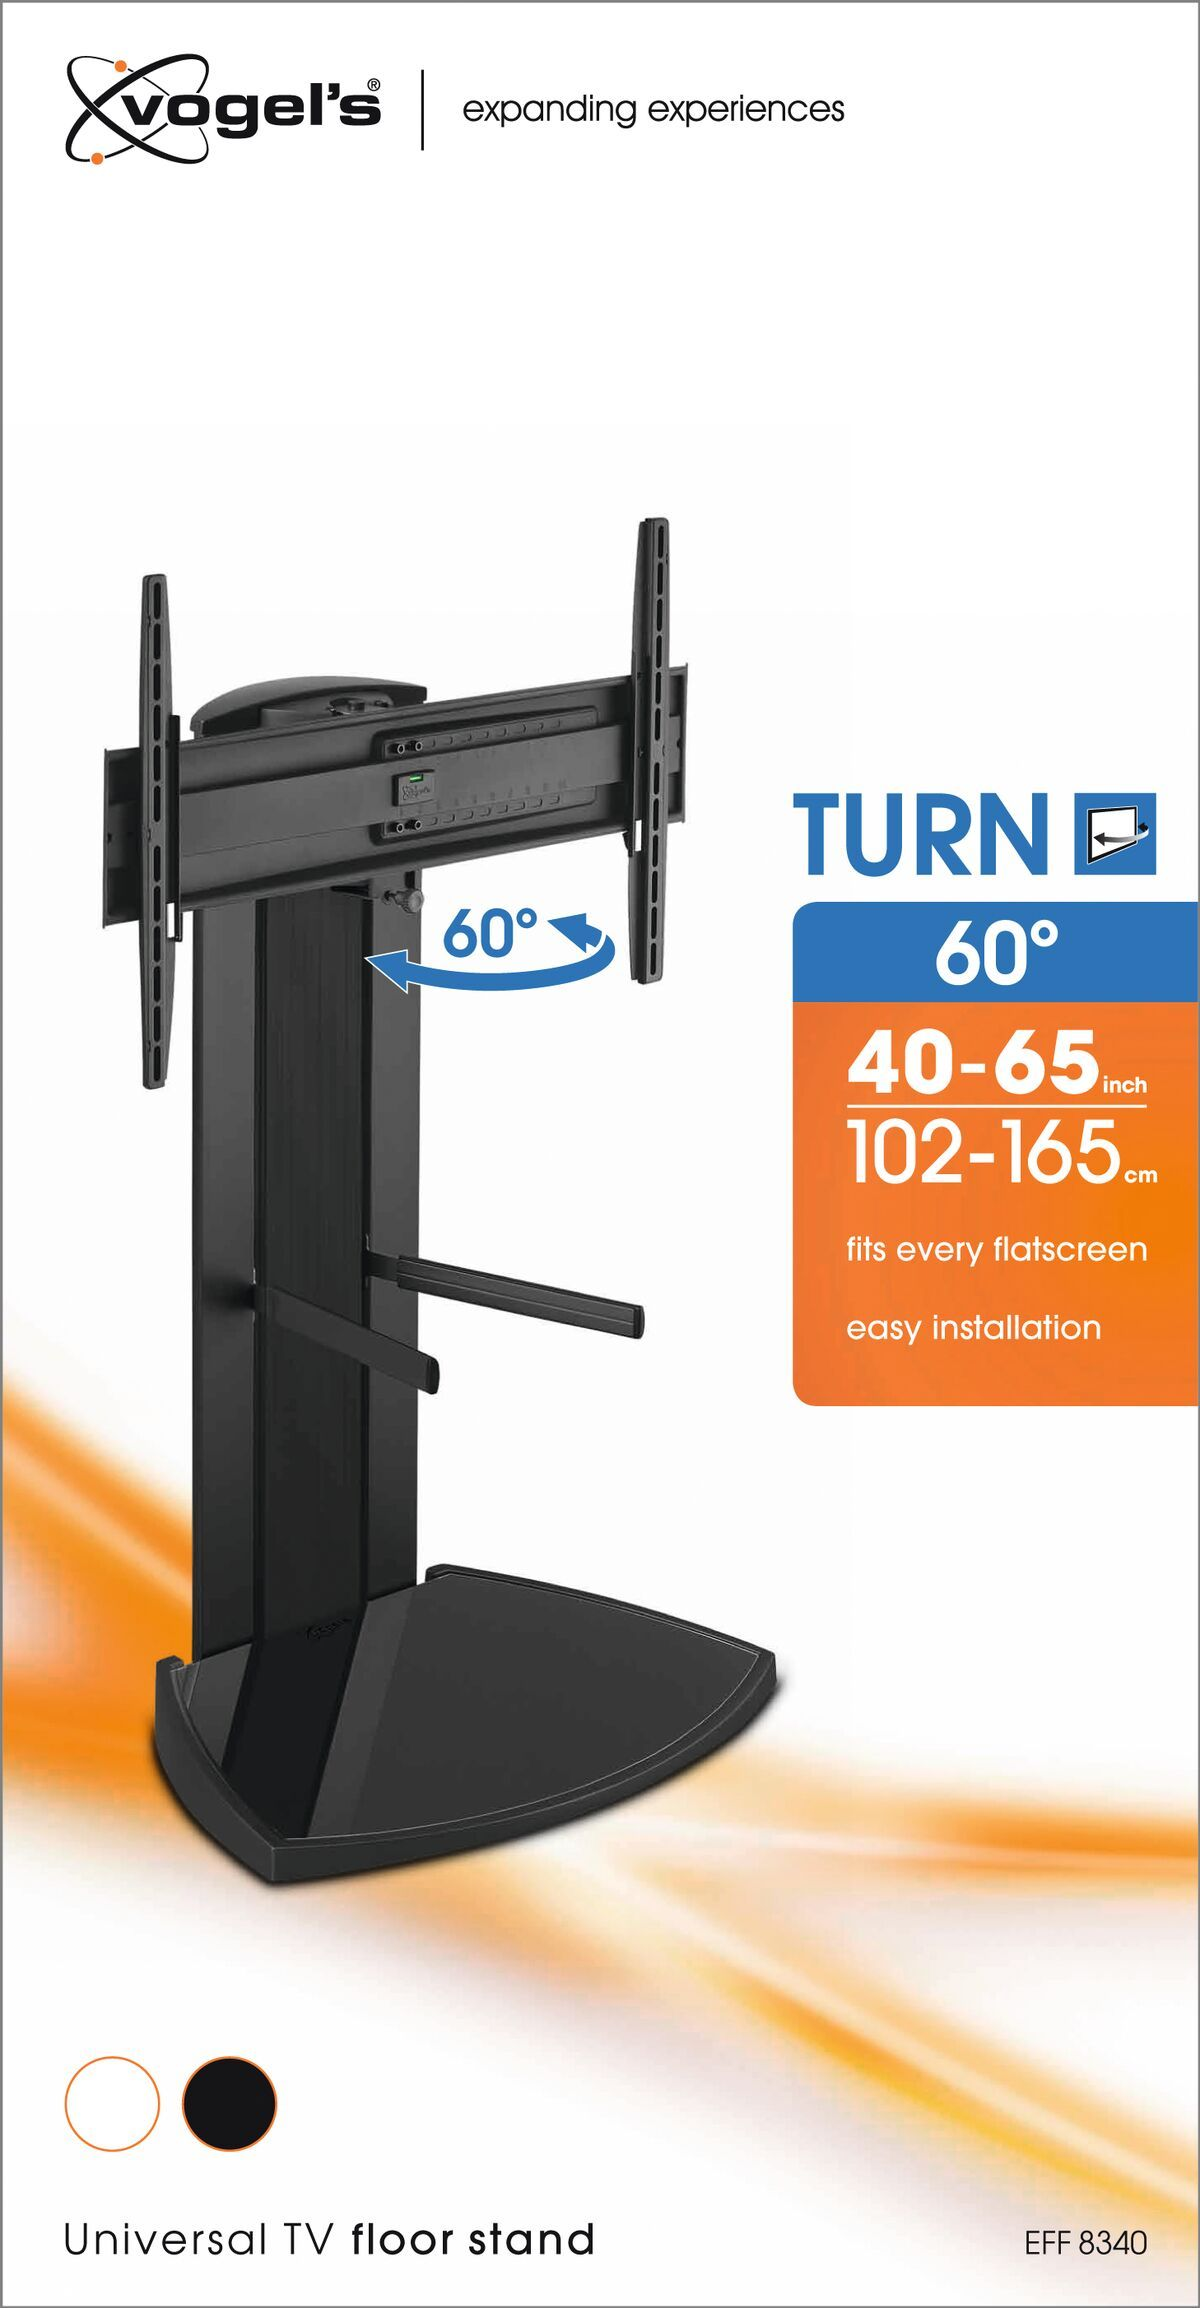 Vogel's EFF 8340 TV Floor Stand (black) - Suitable for 40 up to 65 inch TVs up to 45 kg - Packaging front